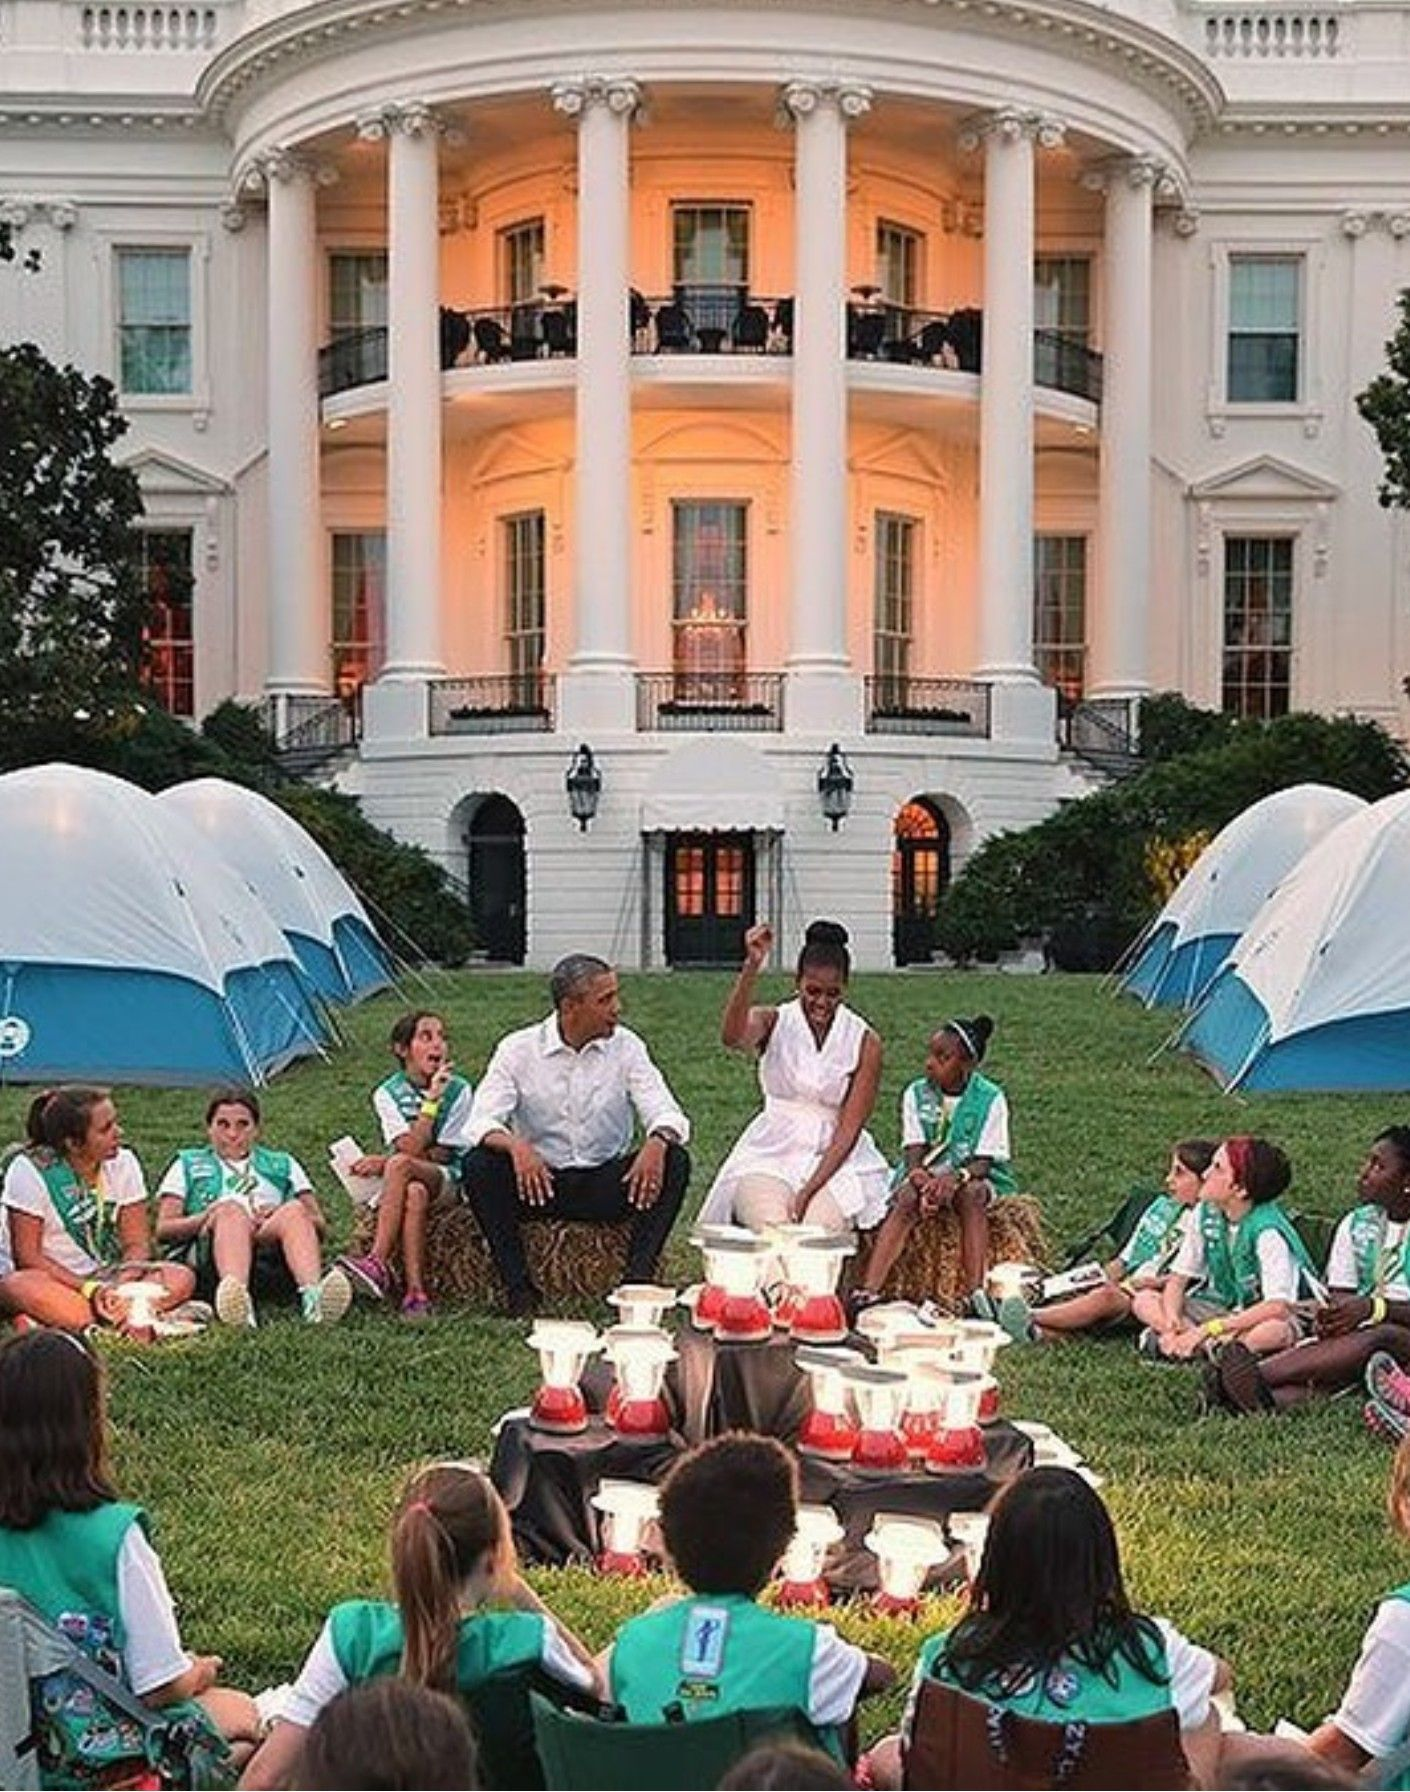 Good times at the WH with the Obamas